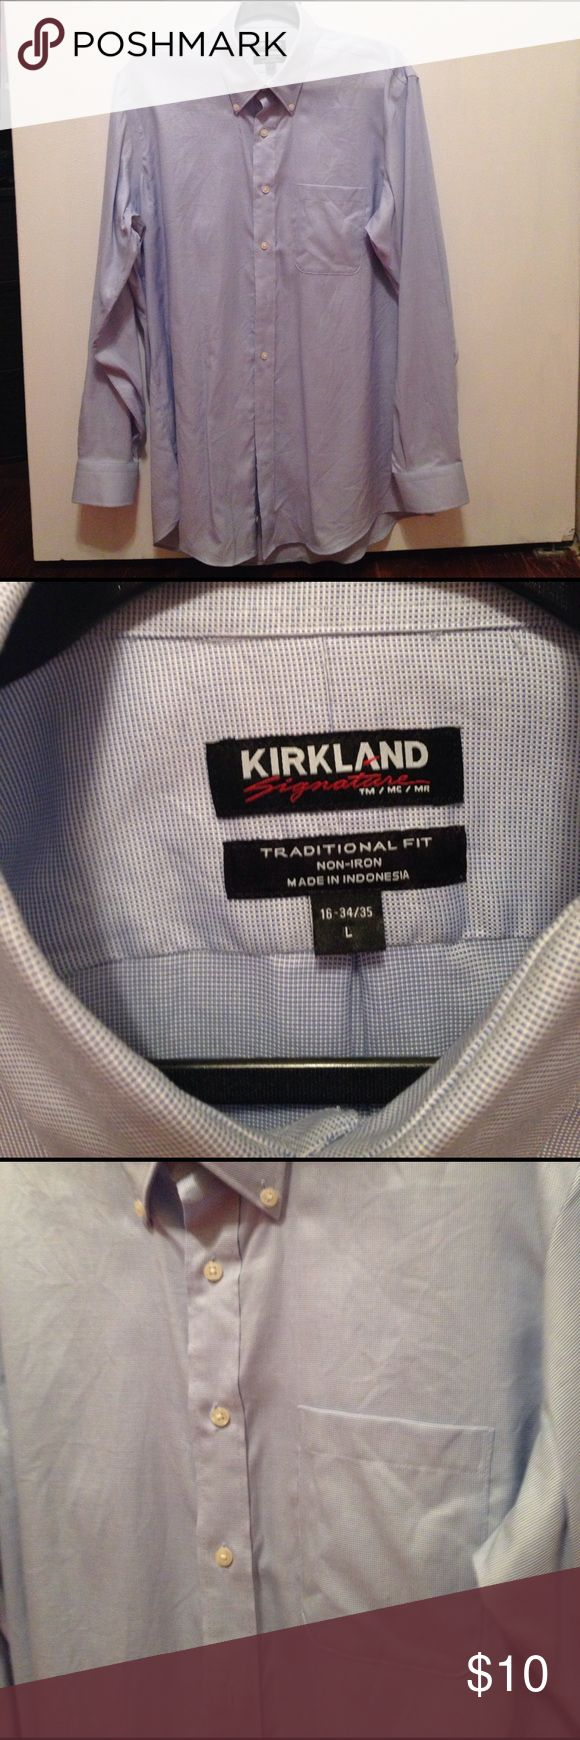 Kirkland L blue polo shirt Kirkland size L, light blue, button down polo shirt. Brand new! Traditional fit. Kirkland  Shirts Dress Shirts